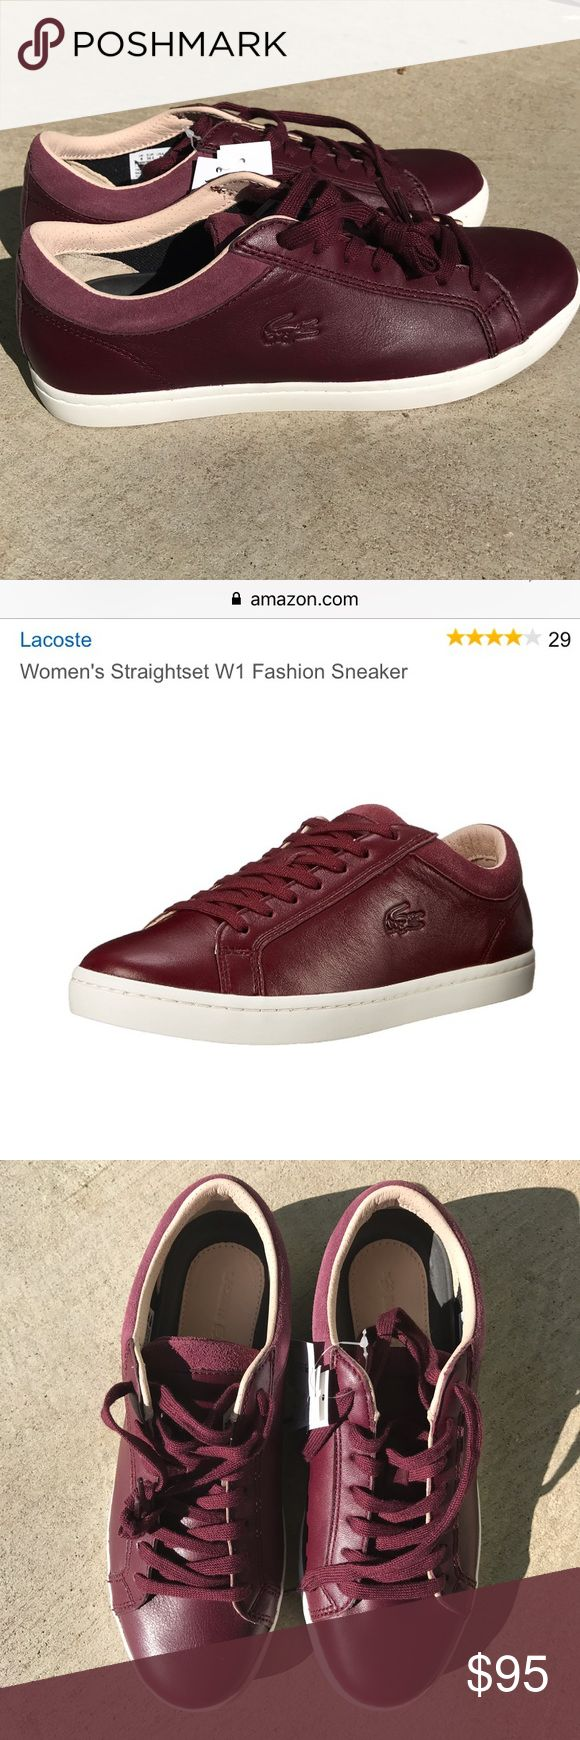 NWT Lacoste Leather Sneakers NWT Lacoste Straightset Leather Sneakers. Deep Burgundy 100% leather upper. Rubber soles. Low top casual sneaker with a lightly padded suede collar and embossed logo. Size 8. I have these in a different sizes and they are so comfortable! No trades. Retails $119 currently on Amazon. As seen in Glamour Magazine! Price firm only on Flash Sales, otherwise open to reasonable offers! Lacoste Shoes Sneakers